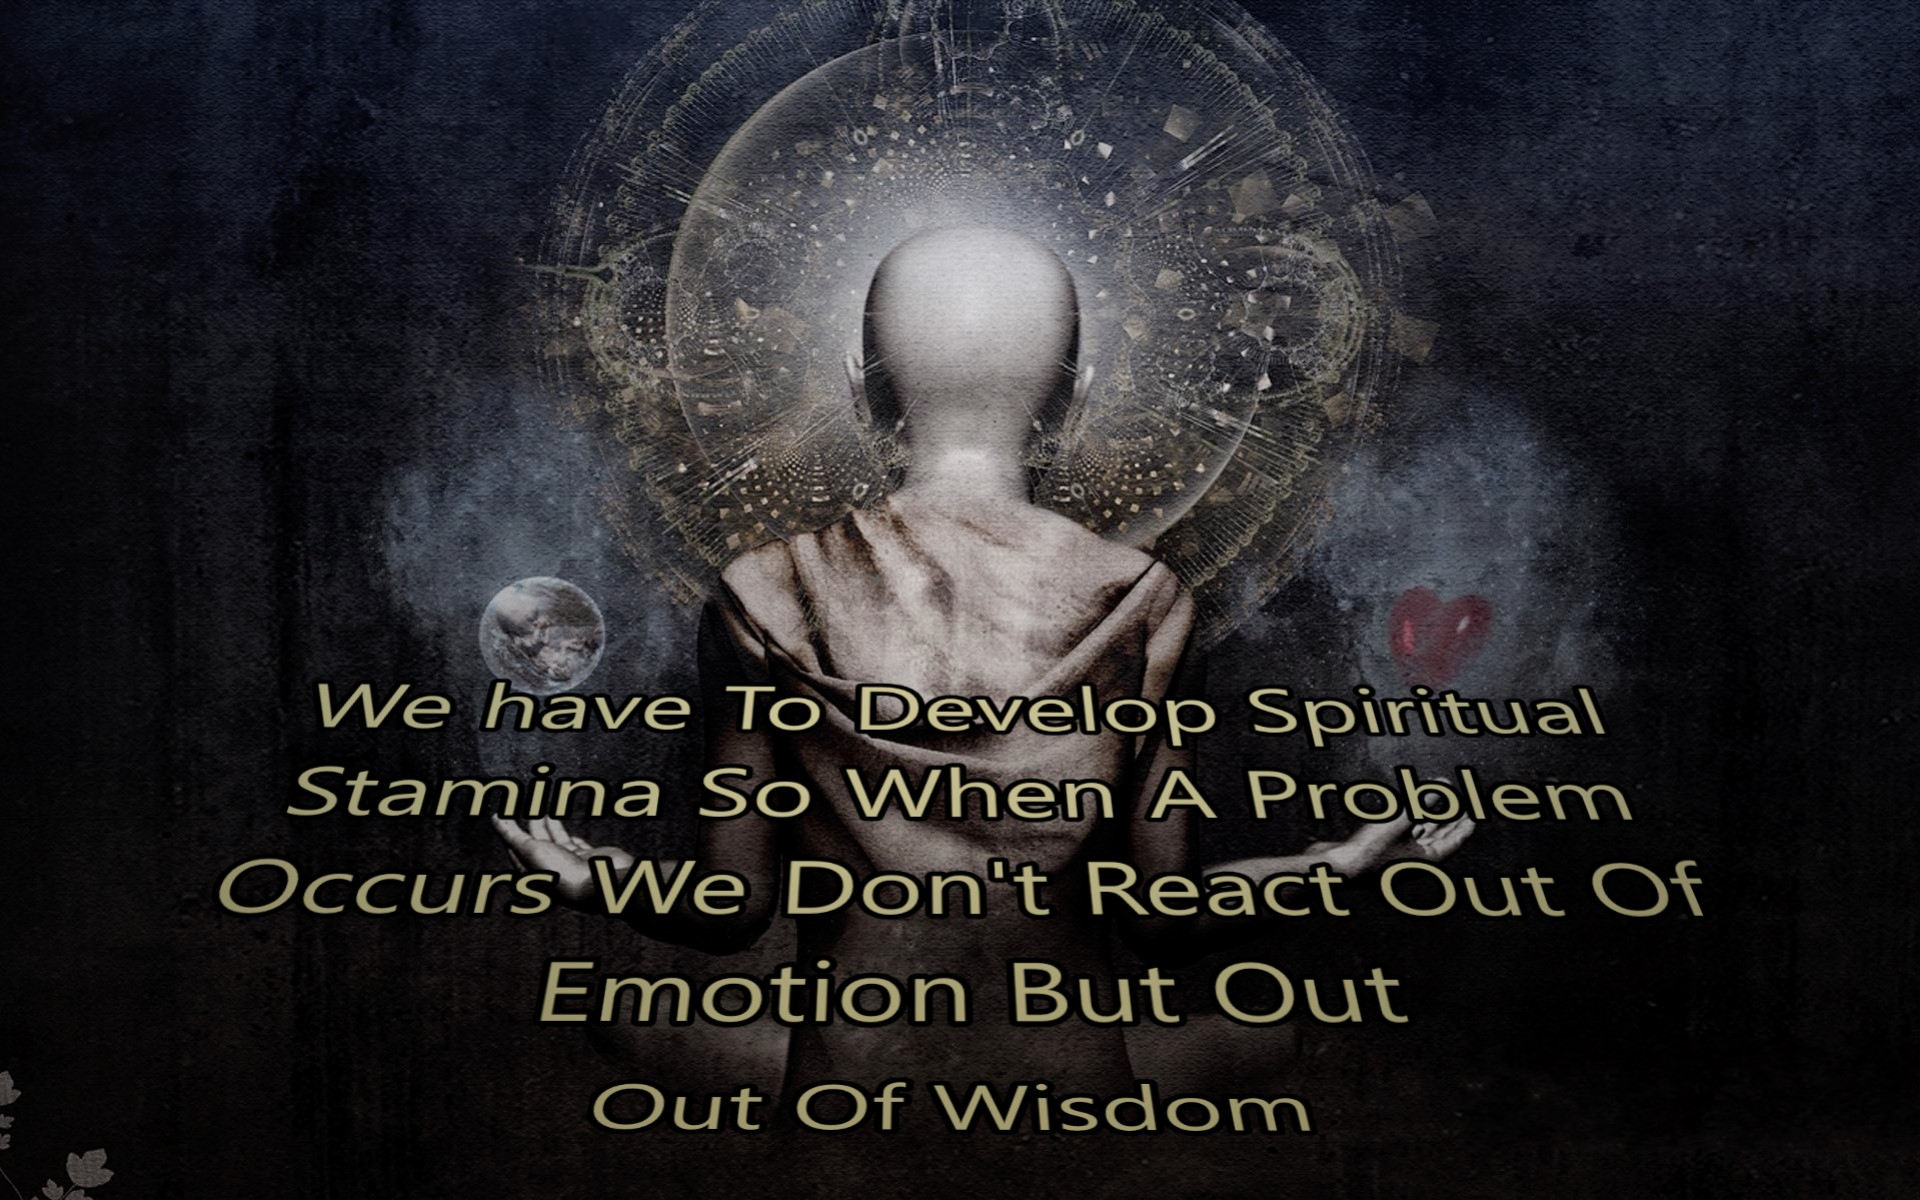 We have To Develop Spiritual Stamina So When A Problem Occurs We Don't React Out Of Emotion But Out Of Wisdom (Unknown) (1920×1200)